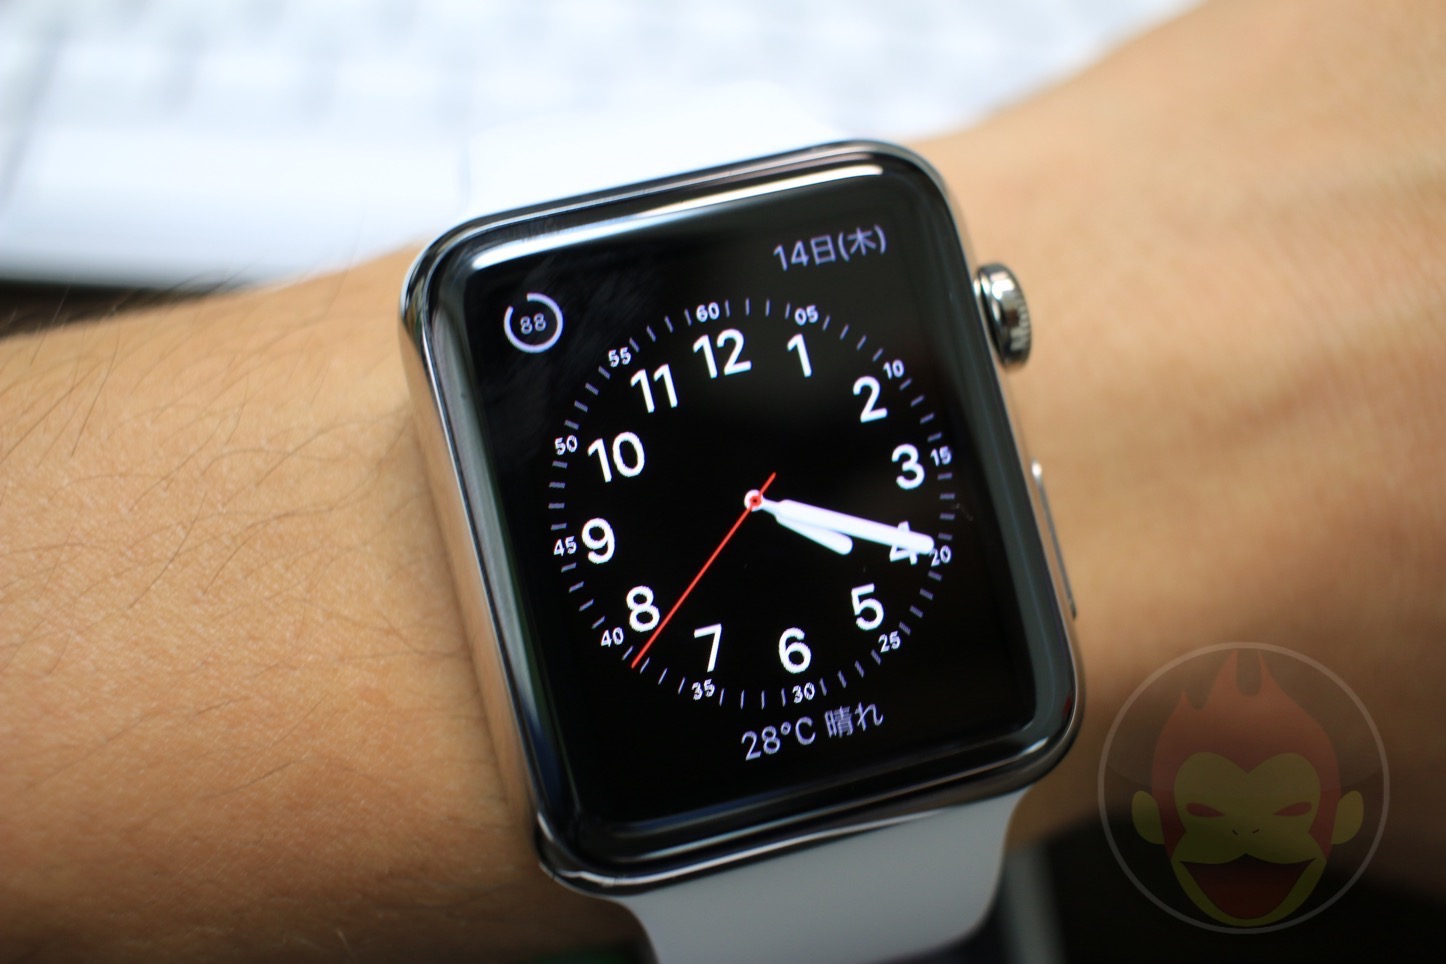 Apple-Watch-Getting-Most-Out-Of-Battery-0007.JPG